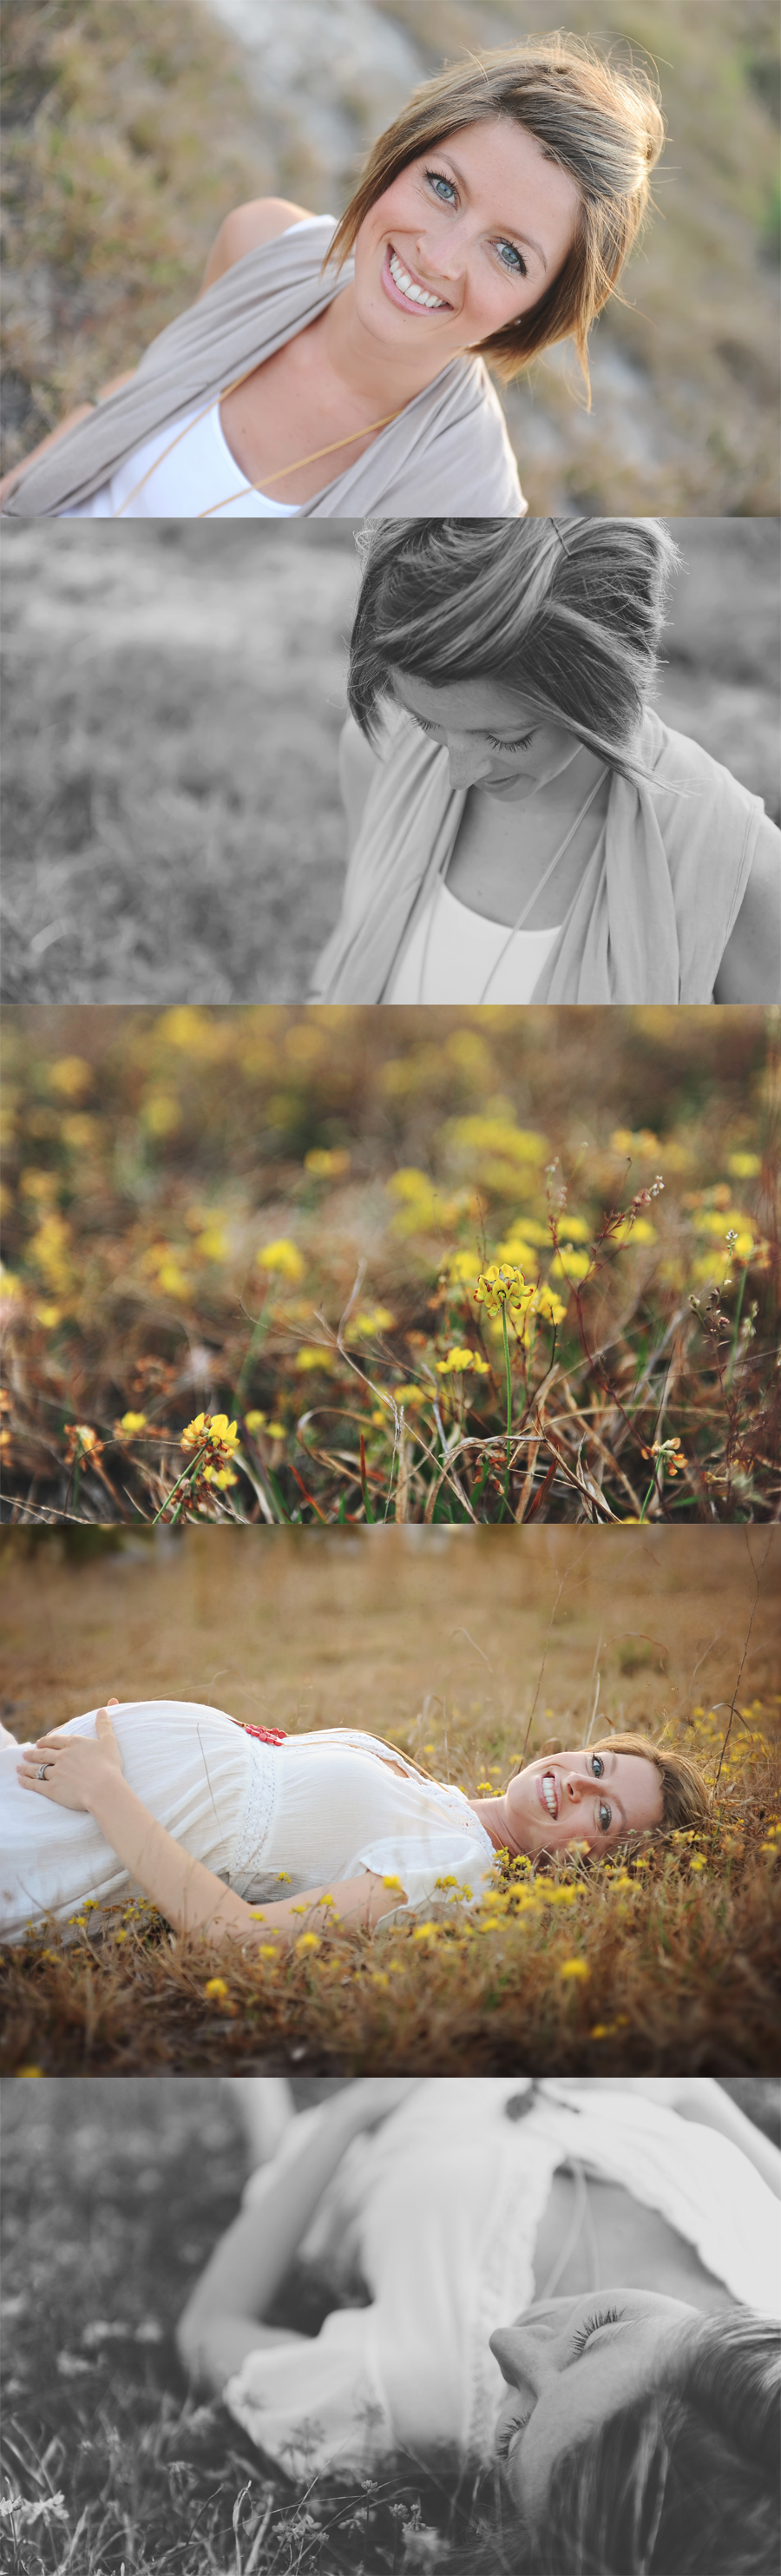 pregnant woman in field of yellow flowers